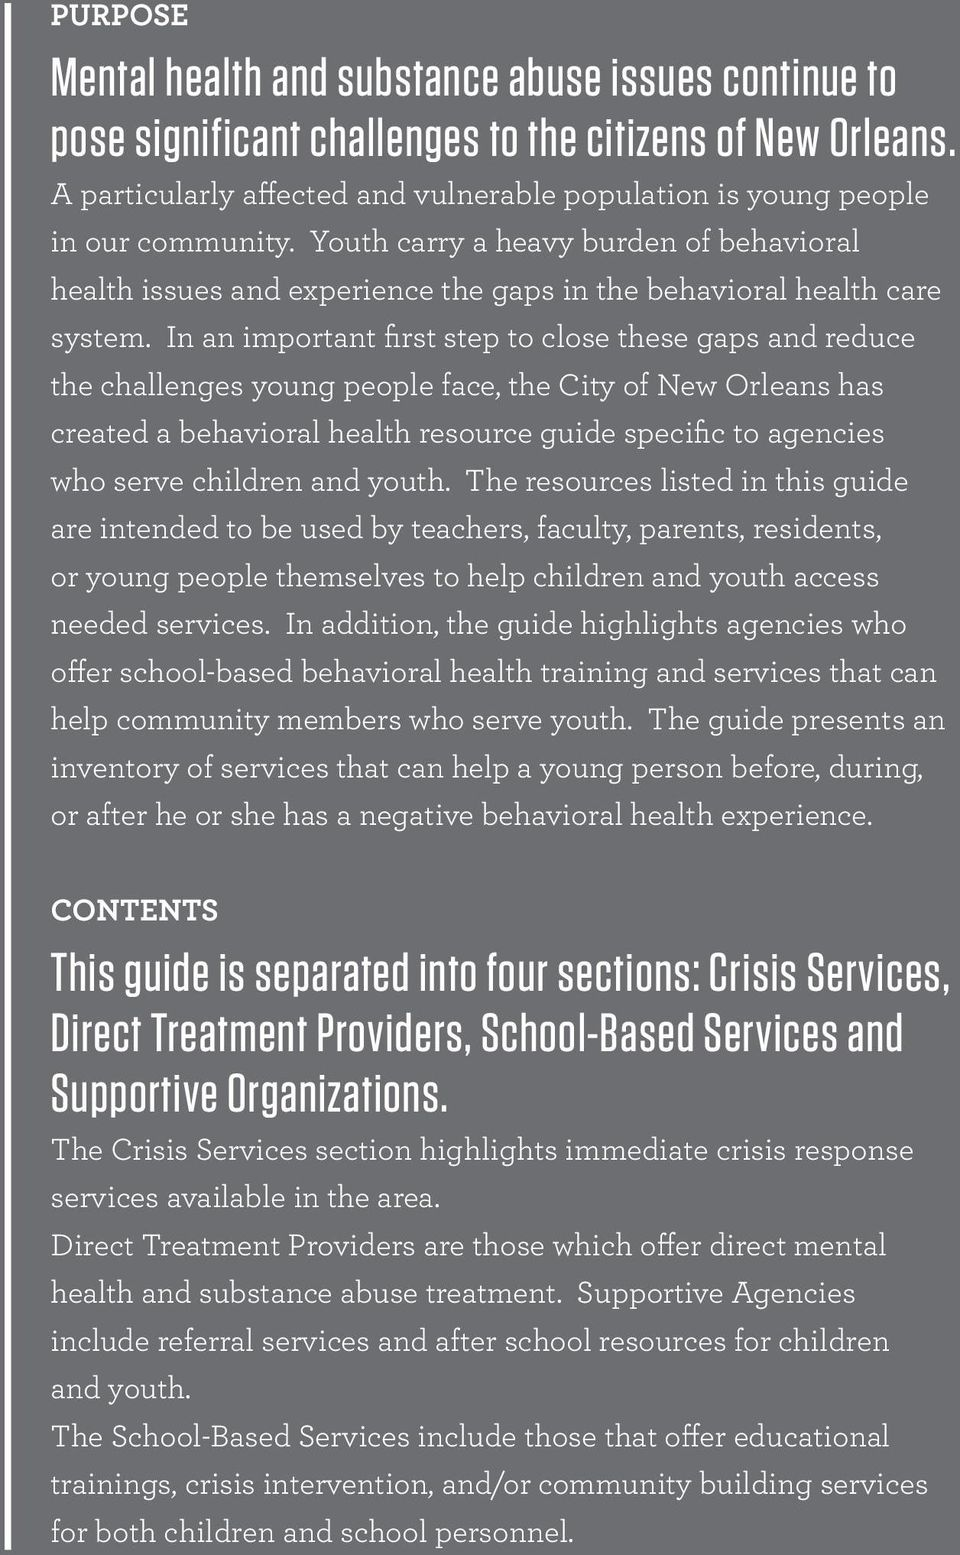 In an important first step to close these gaps and reduce the challenges young people face, the City of New Orleans has created a behavioral health resource guide specific to agencies who serve